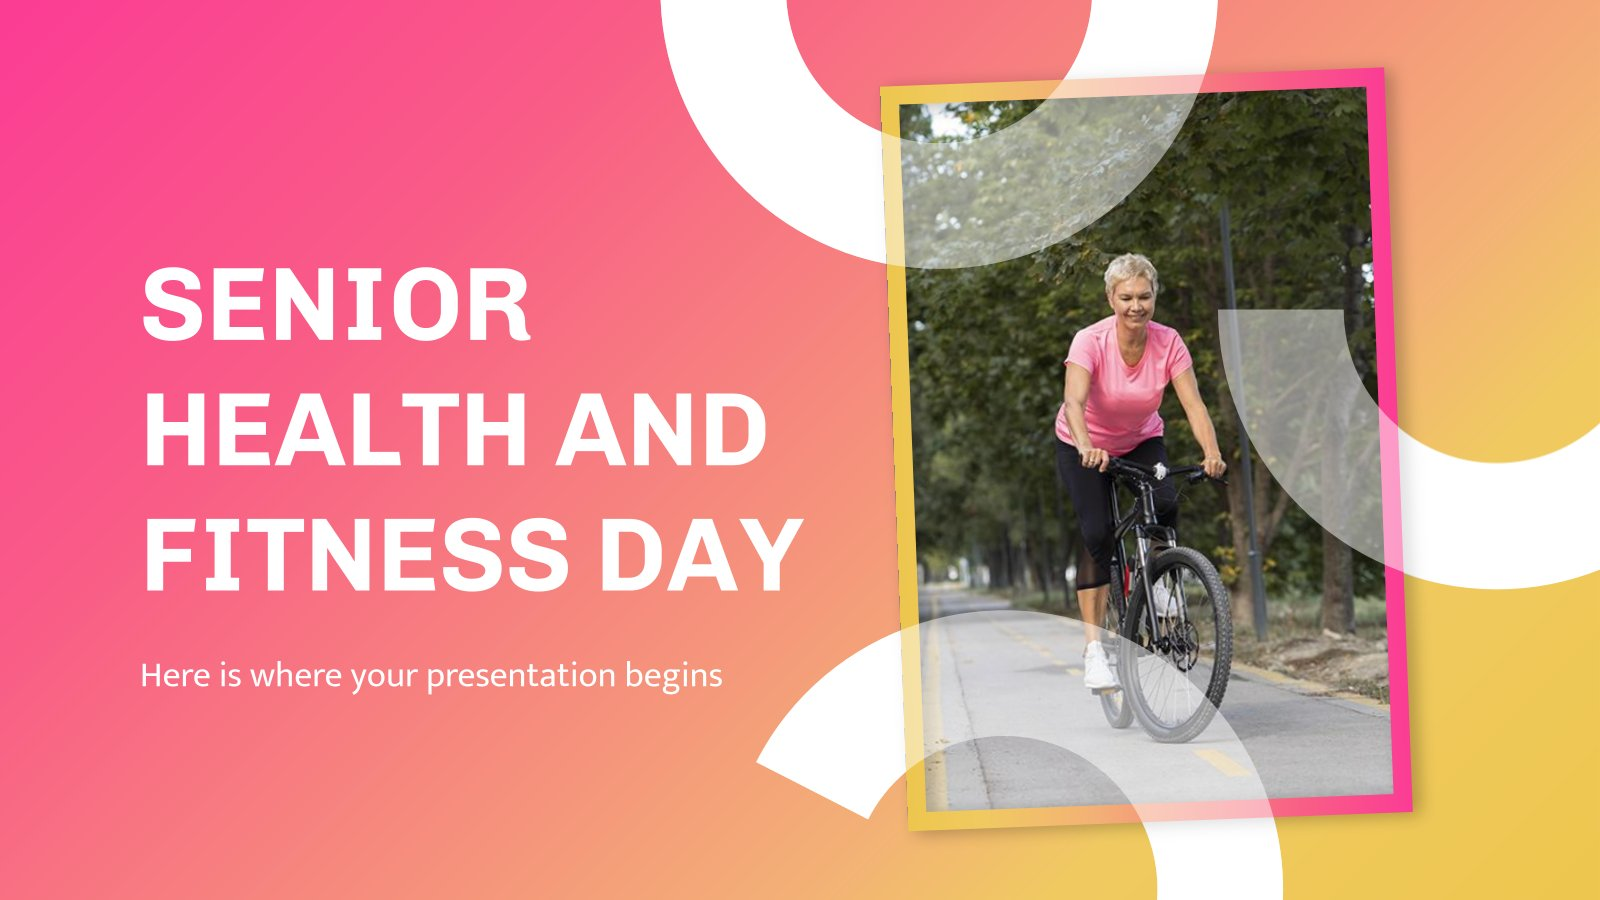 Senior Health and Fitness Day presentation template